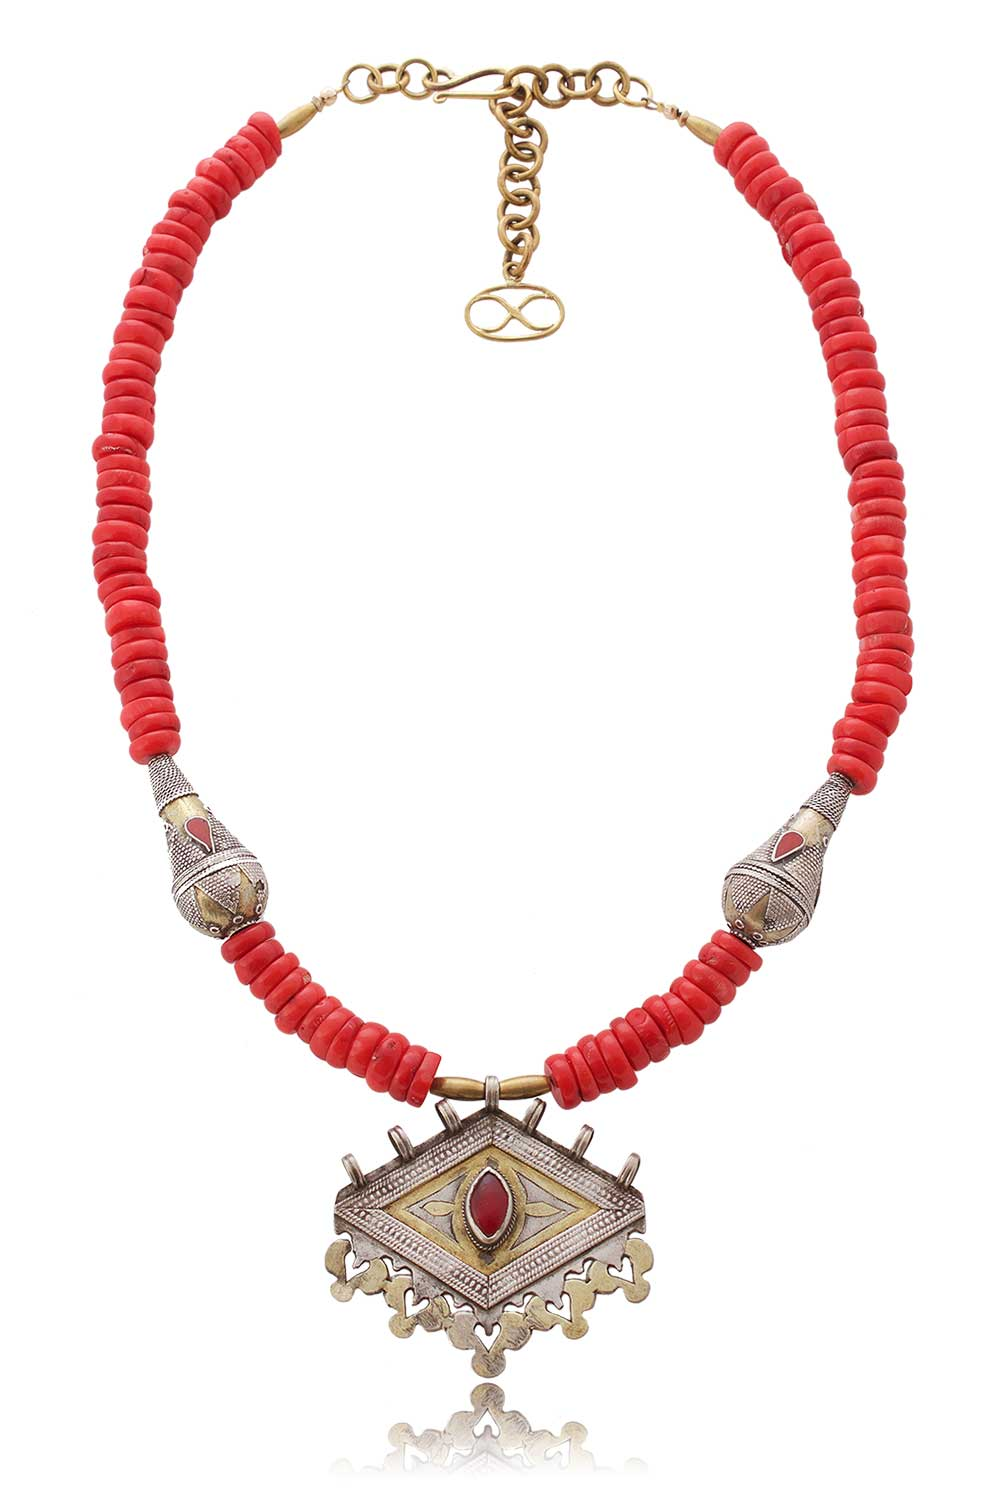 Moroccan Coral with Antique Kazakhstan beads and Turkoman Pendant by SHIKHAZURI